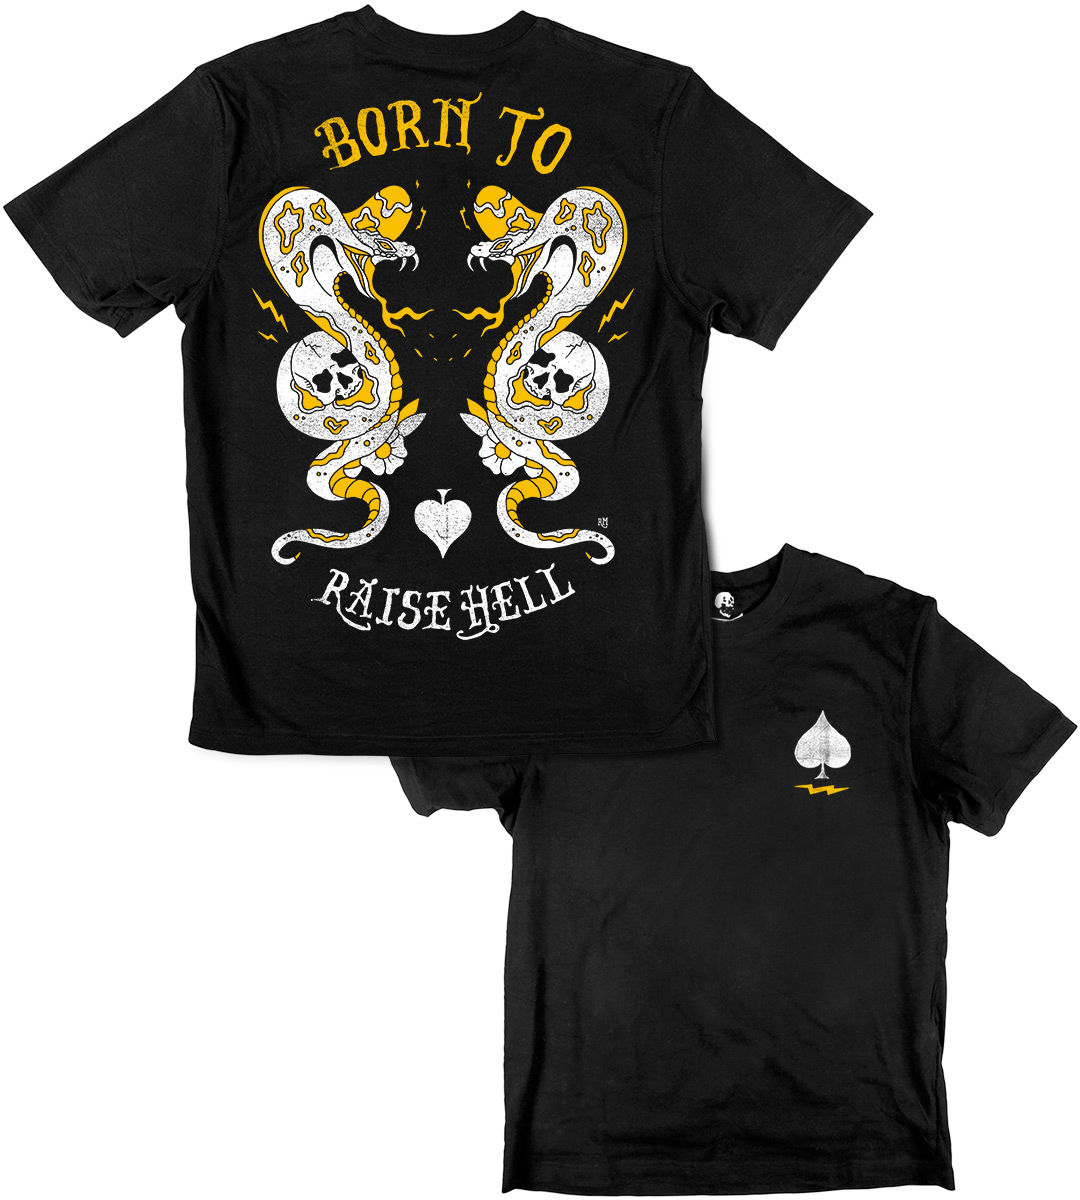 BORN TO RAISE HELL - product image